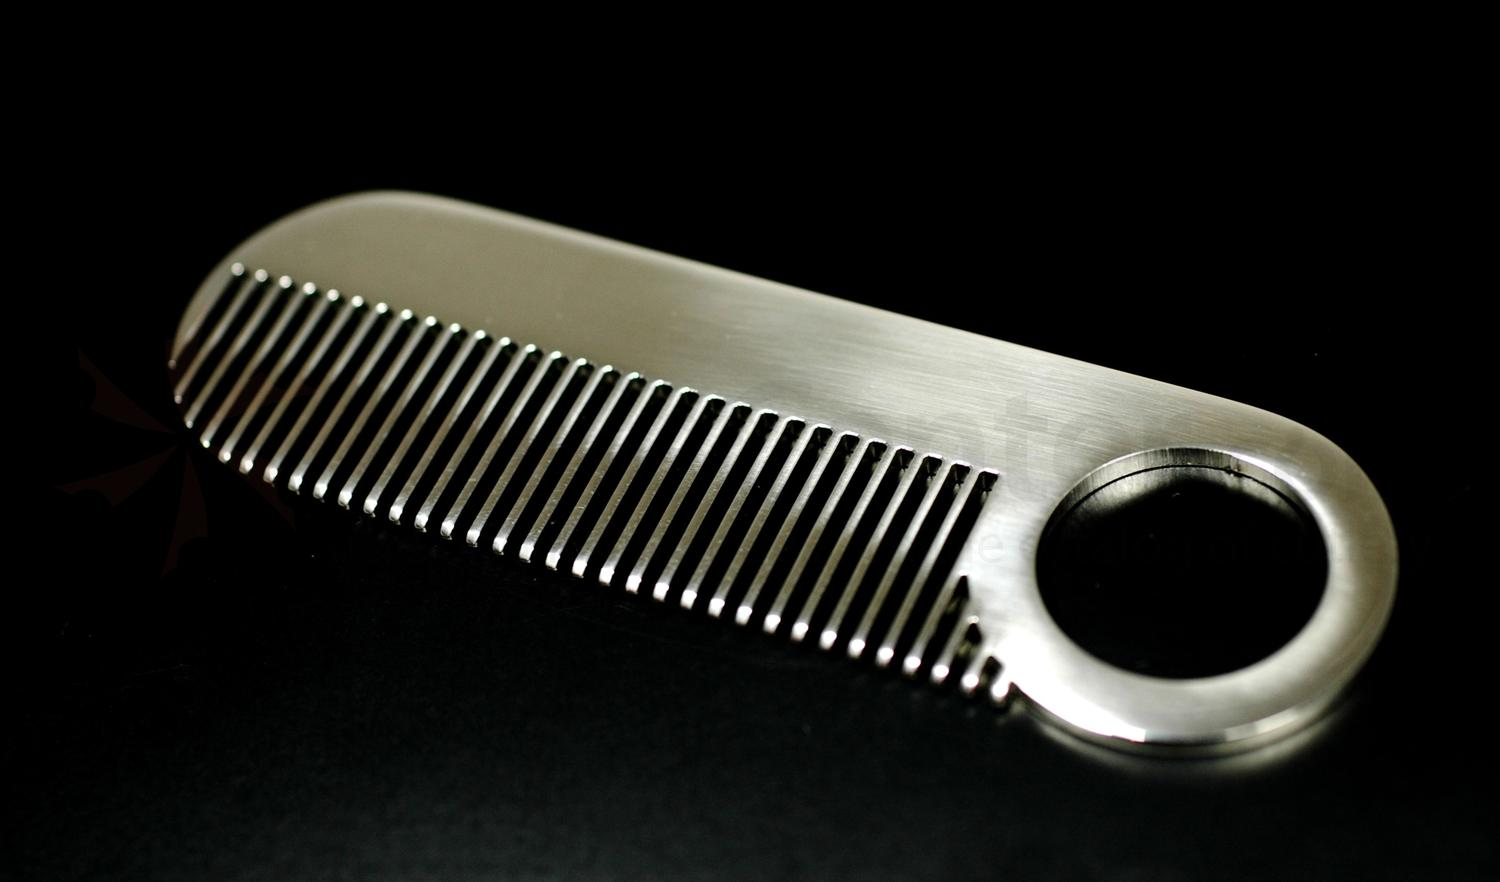 Chicago Comb Model 2 Beard And Mustache Comb Mirror